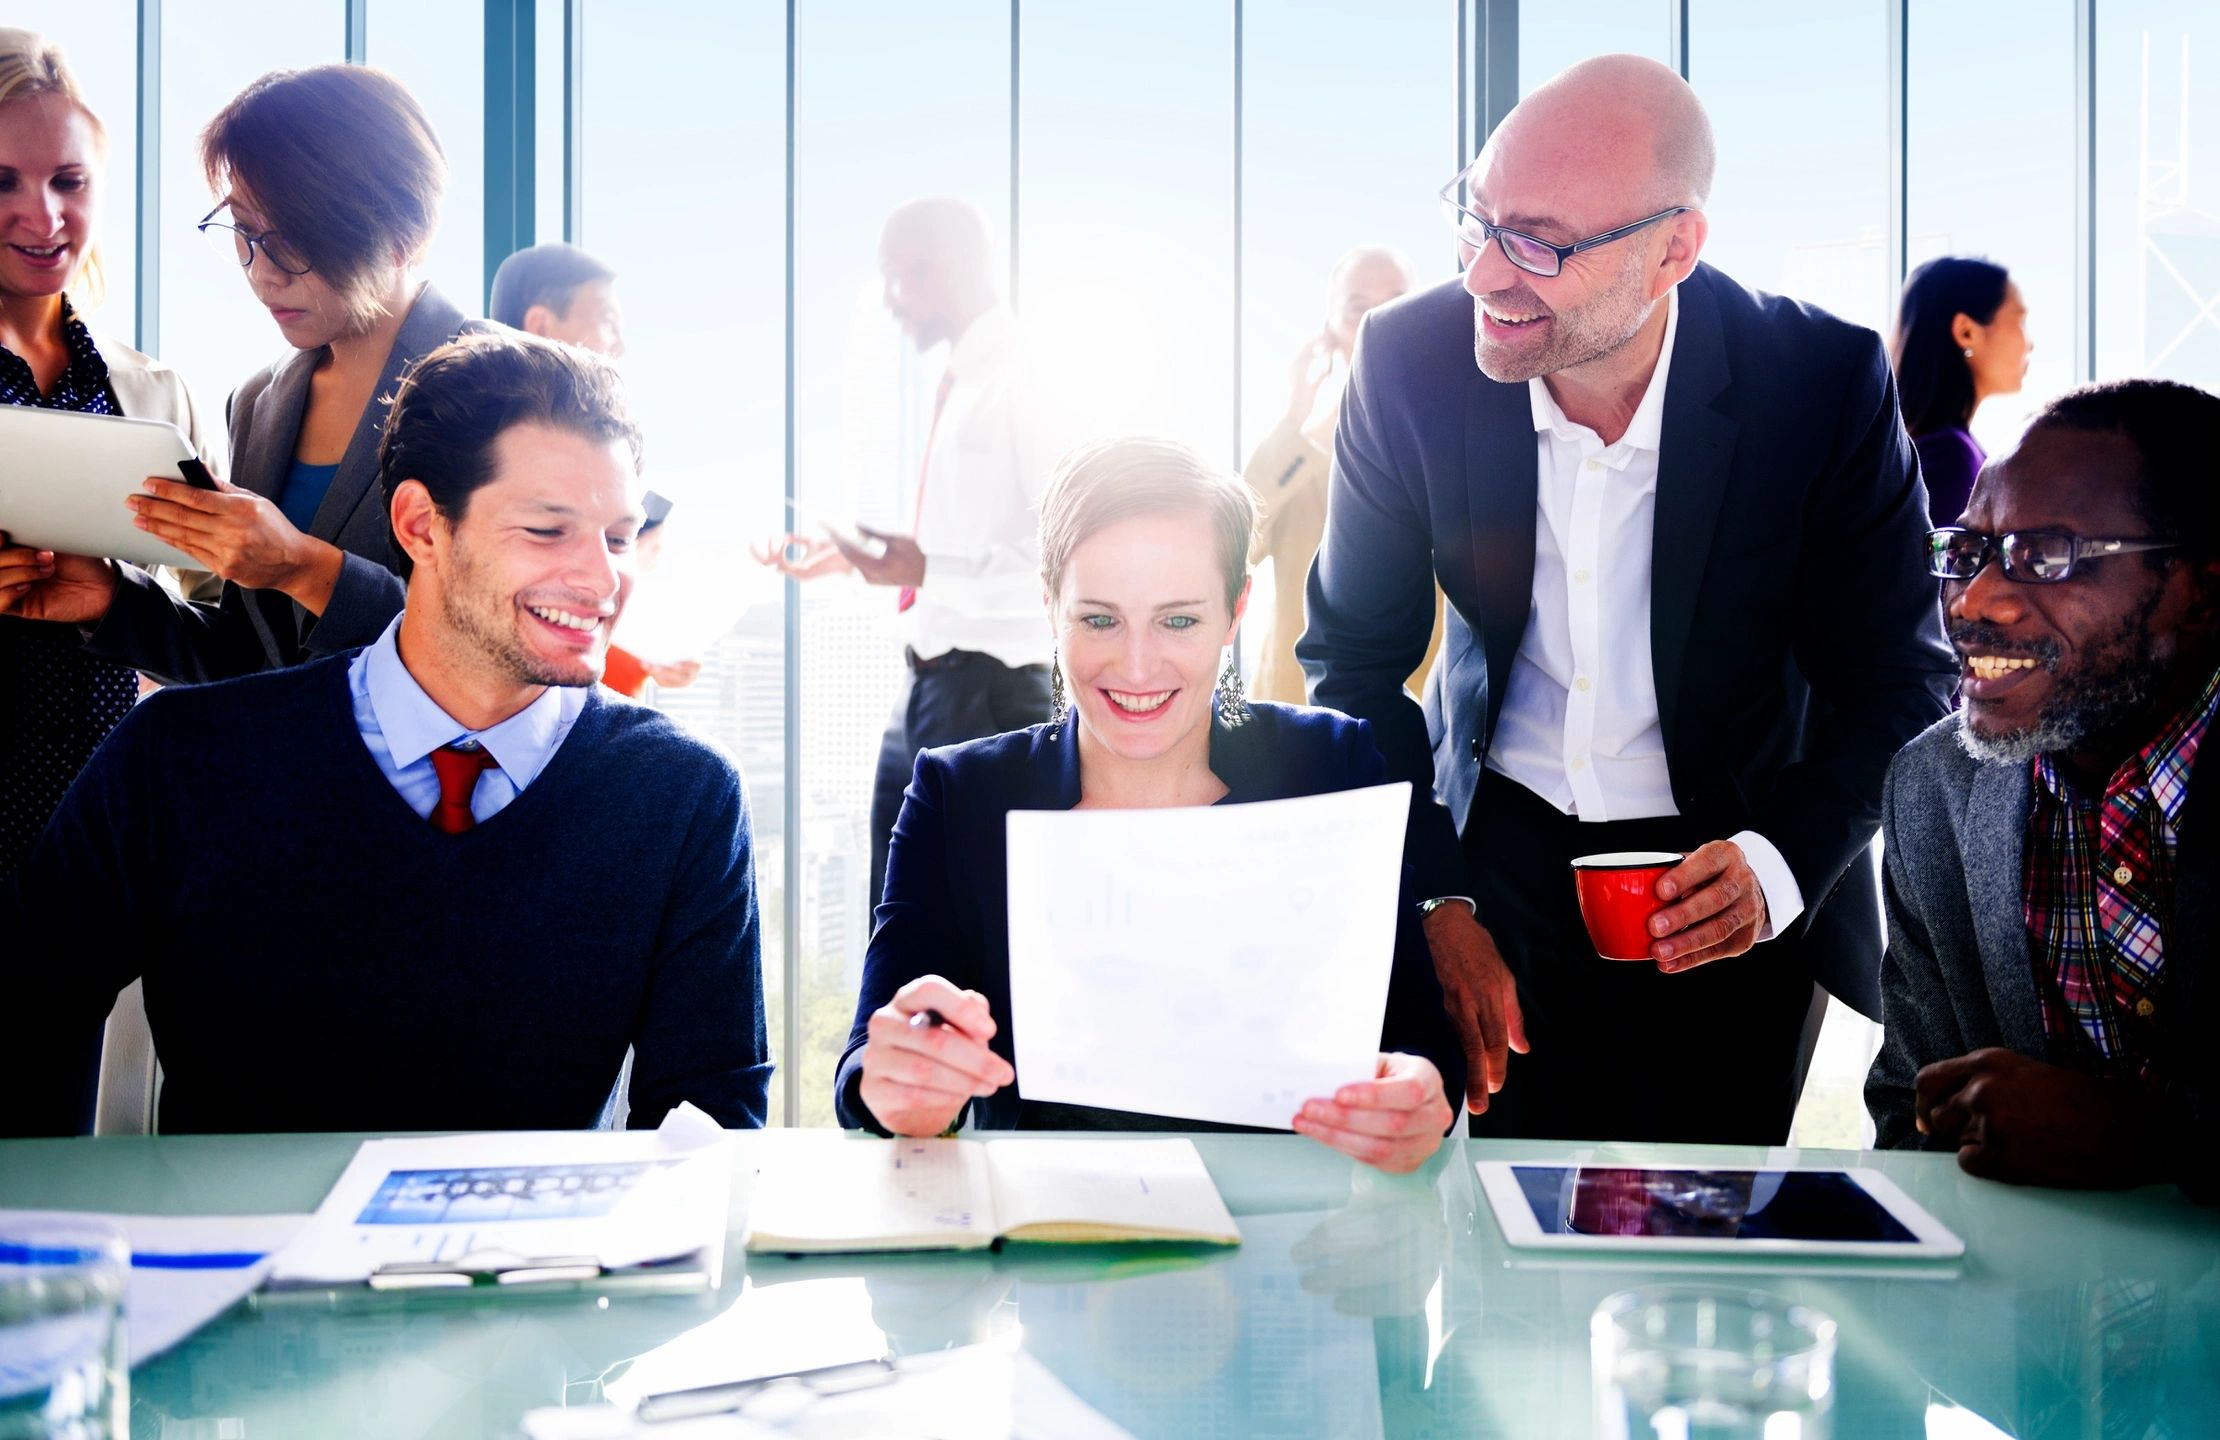 A group of business associates sitting at a table